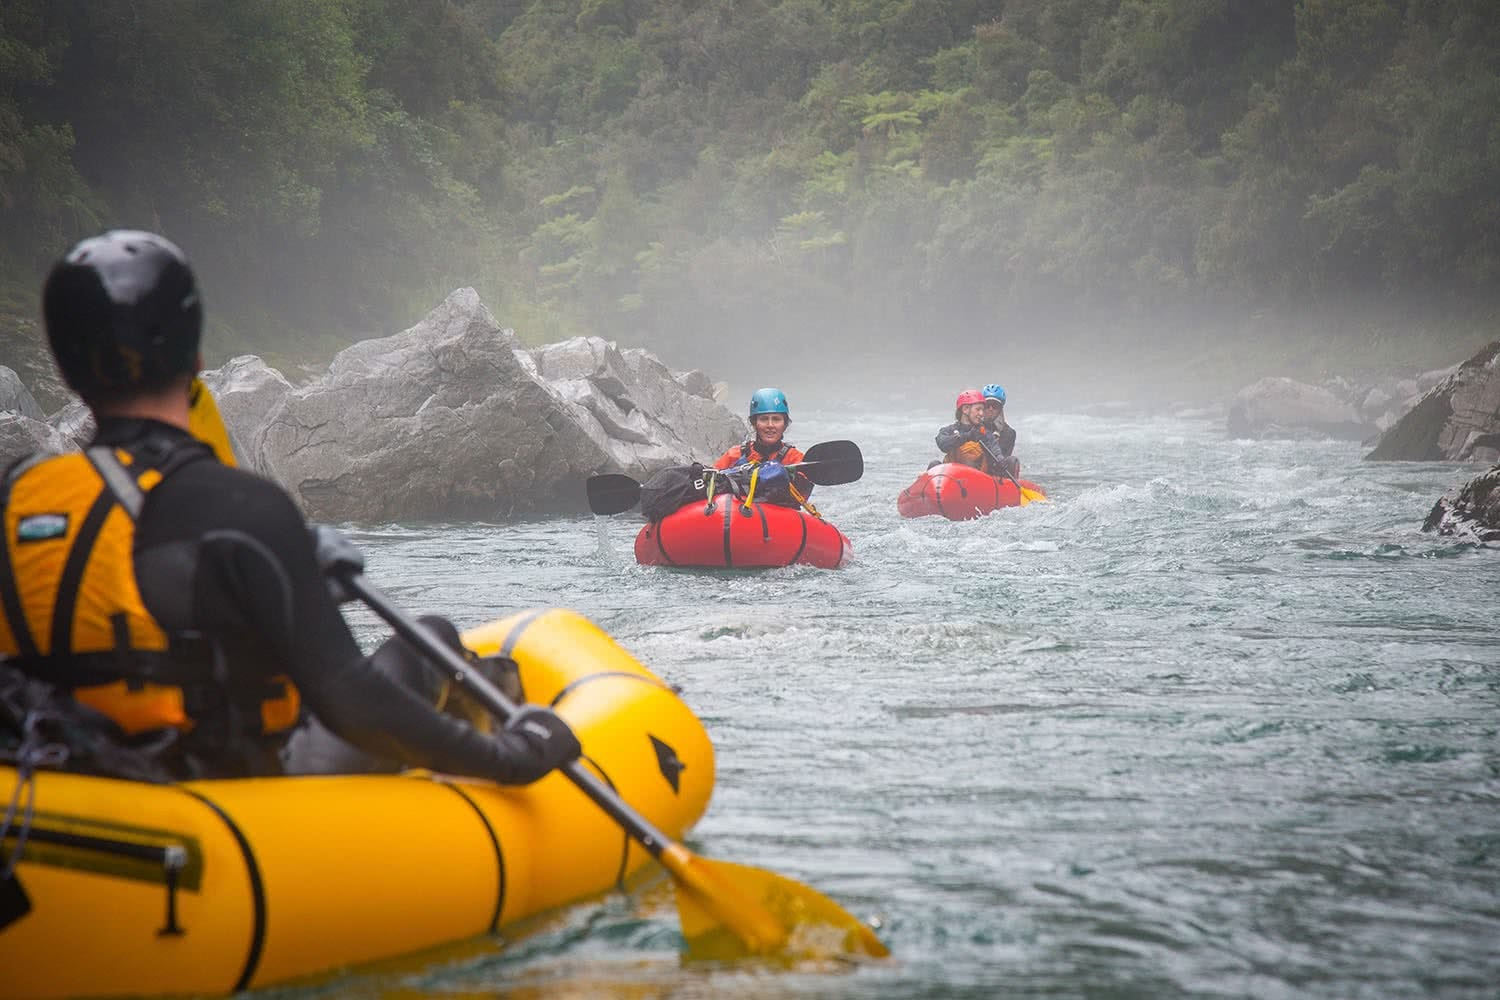 Ode To The River // Canyoning And Packrafting In New Zealand, Xavier Anderson, mist, paddles, helmets, rocks